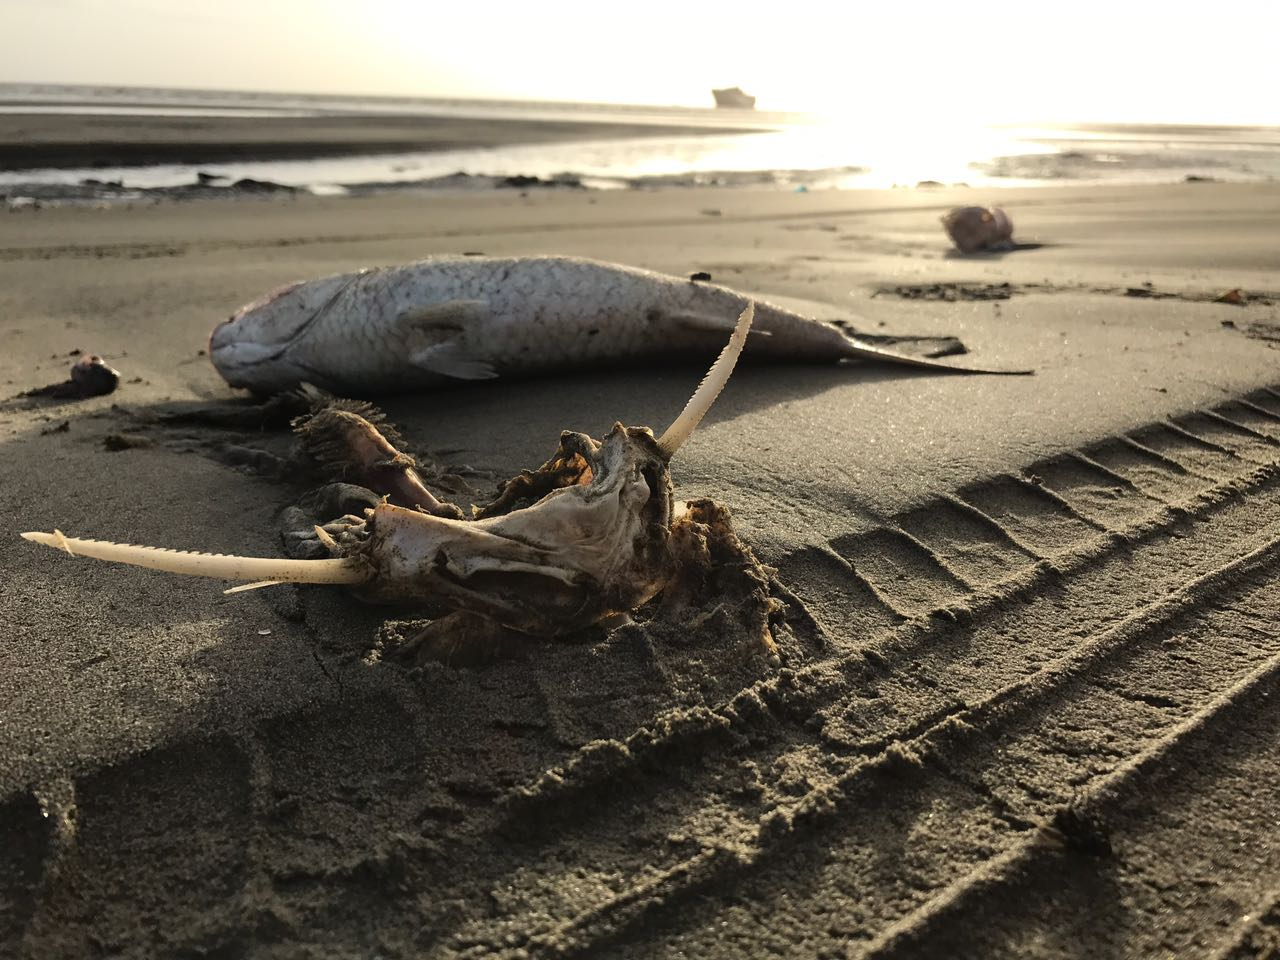 Official Statements on the La Brea Fish Kill Investigation